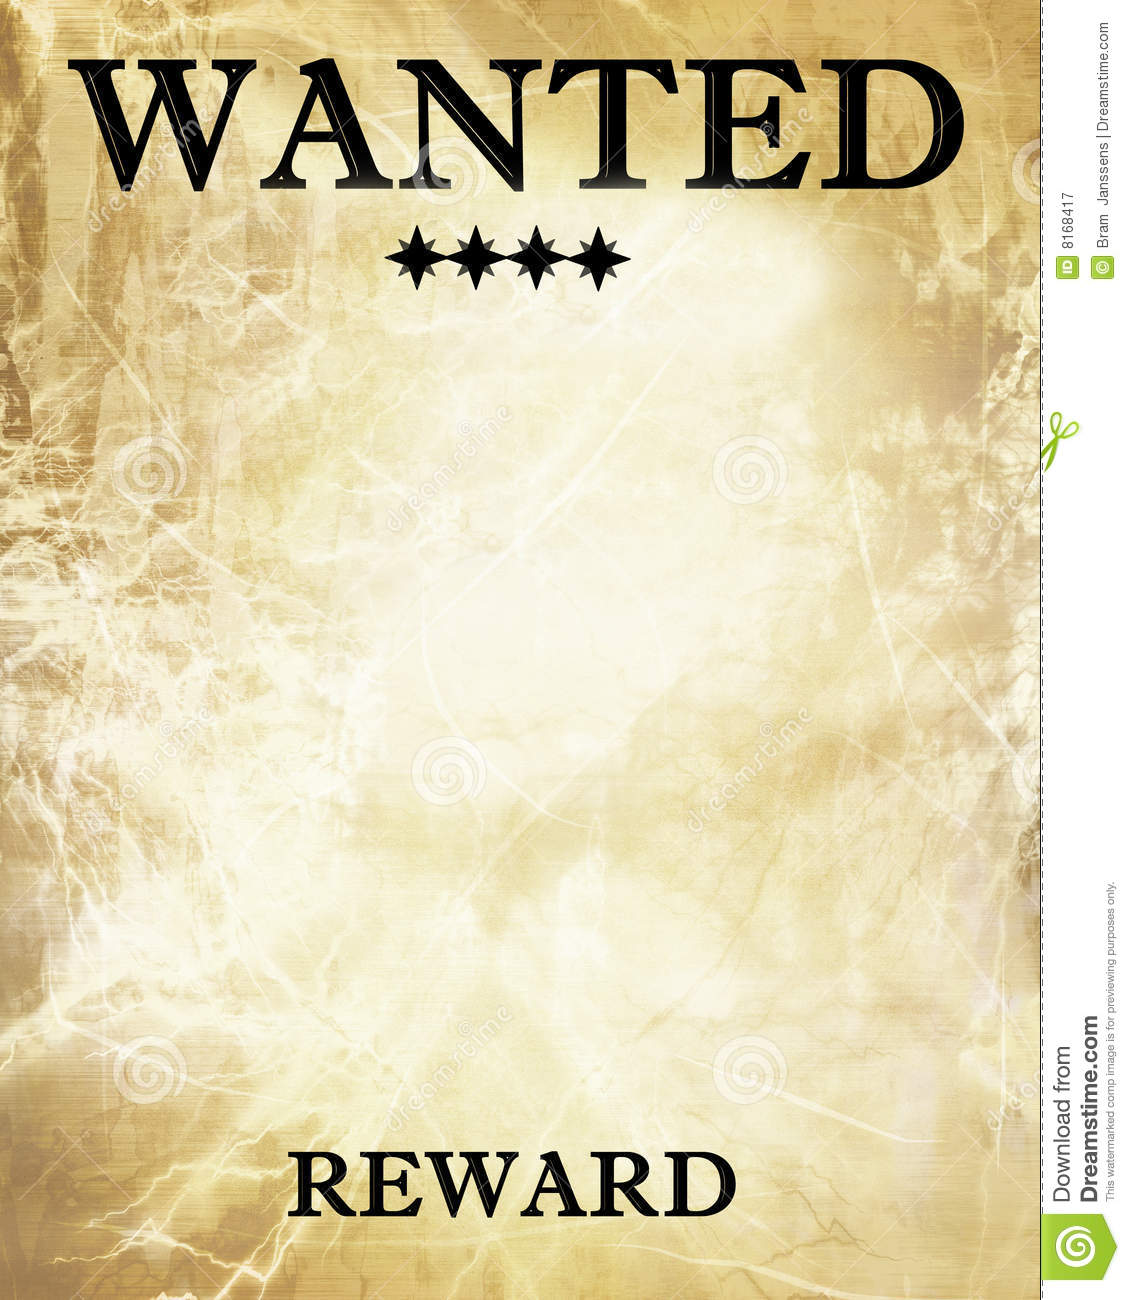 Wanted Paper Royalty Free Stock Photography - Image: 8168417